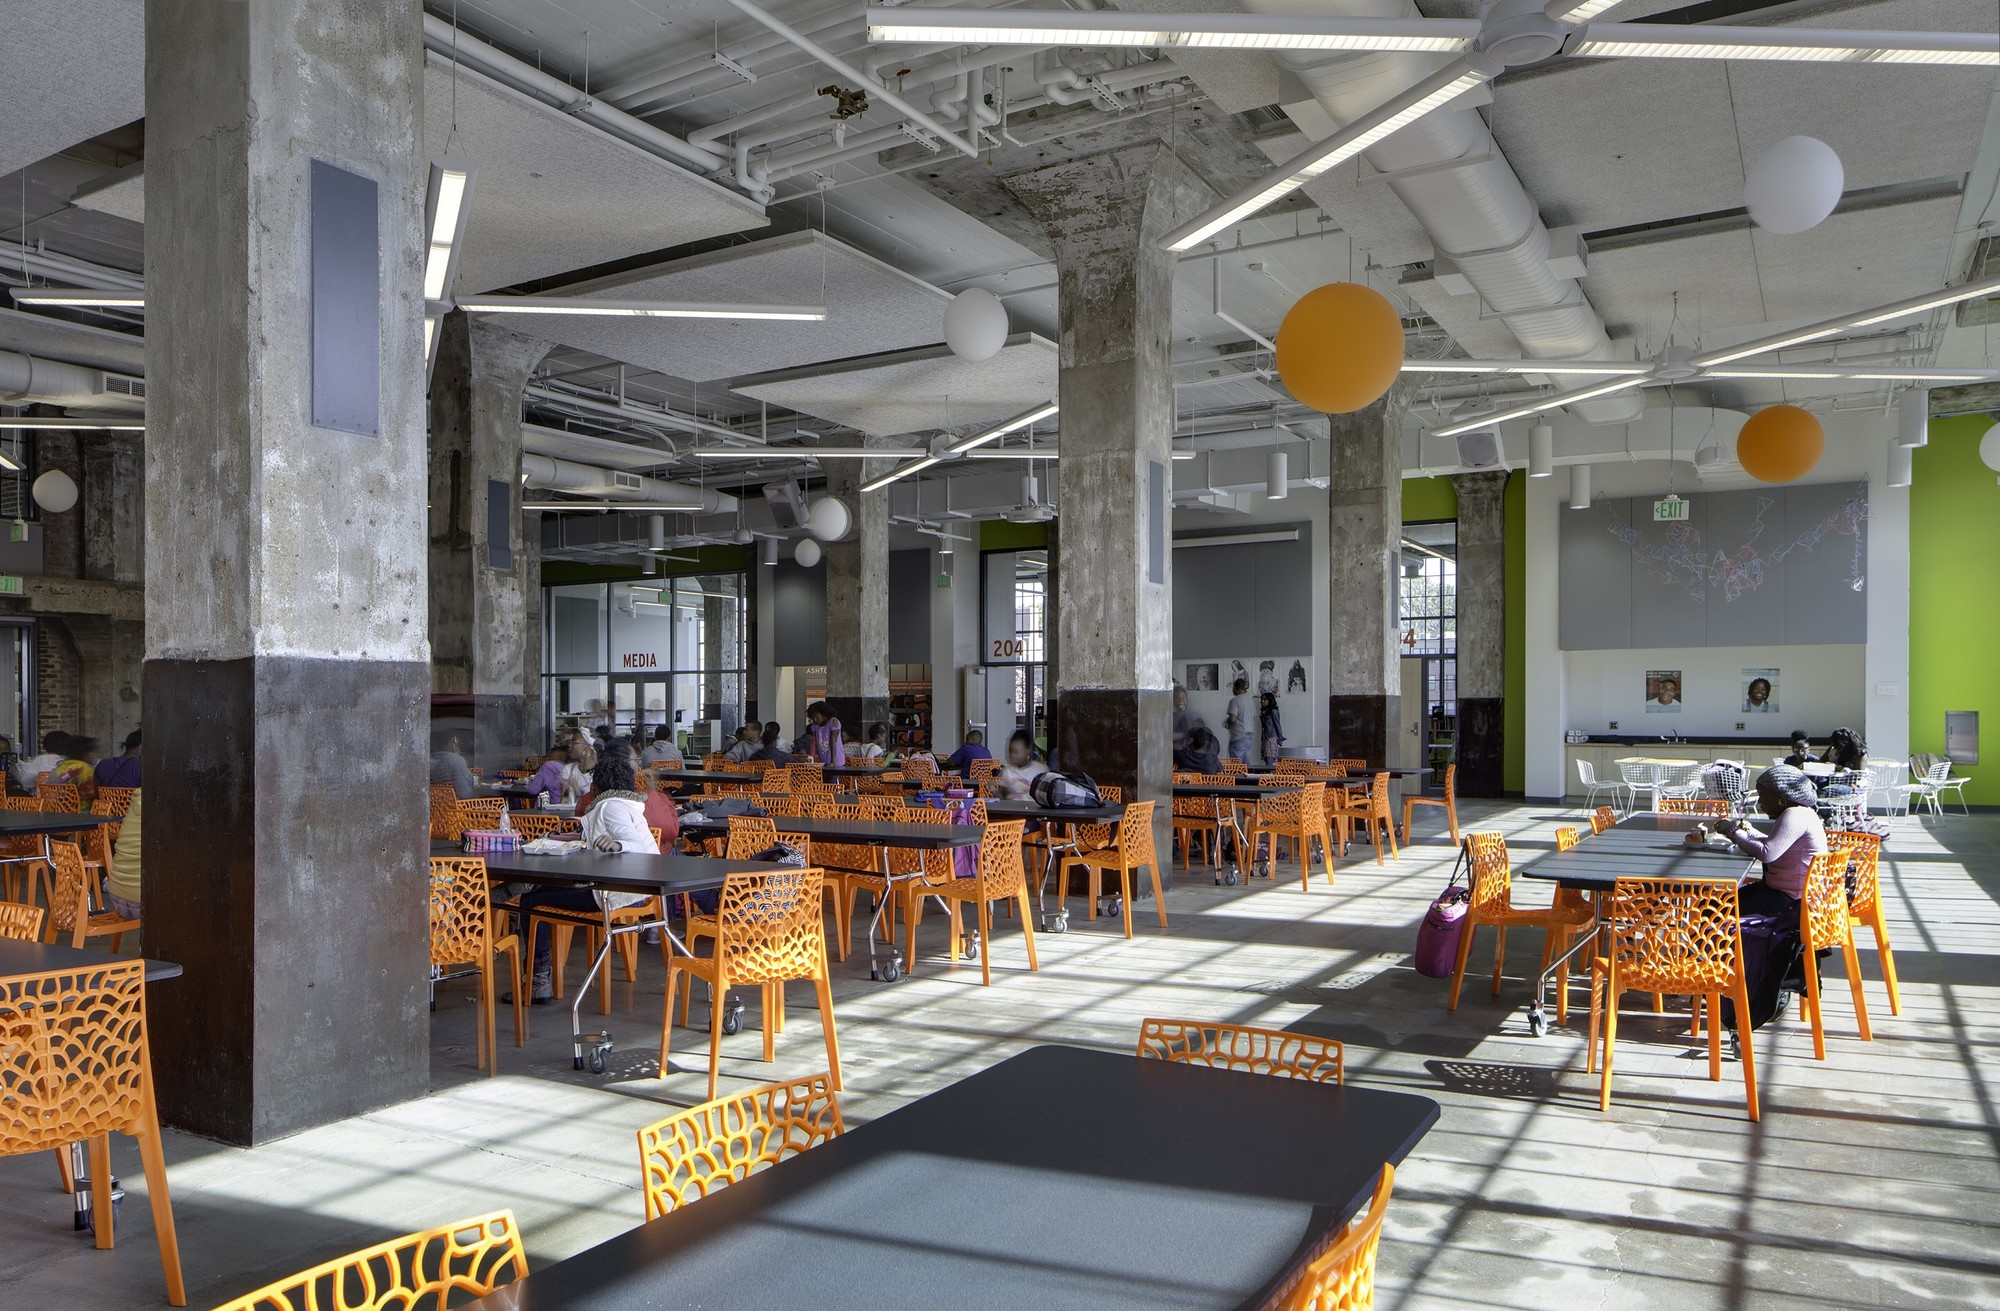 baltimore architecture cafeteria google projects award cool educational room interior excellence aia multipurpose snead architects archdaily schools connolly karl lunch